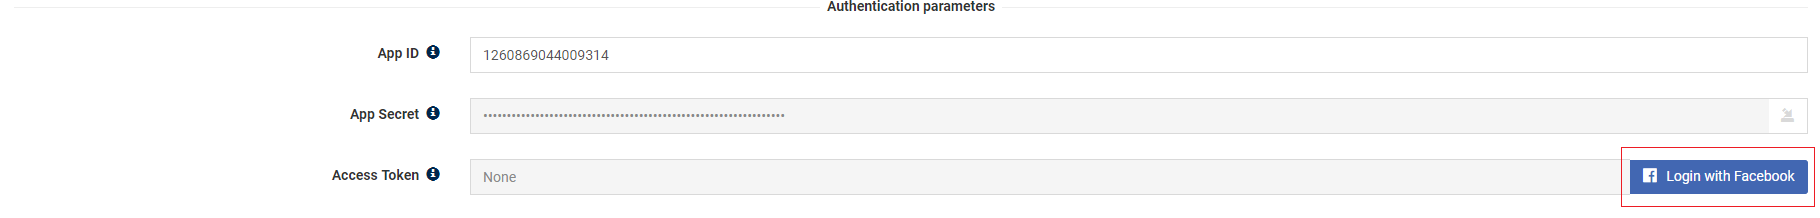 facebook-authentication-parameters.png